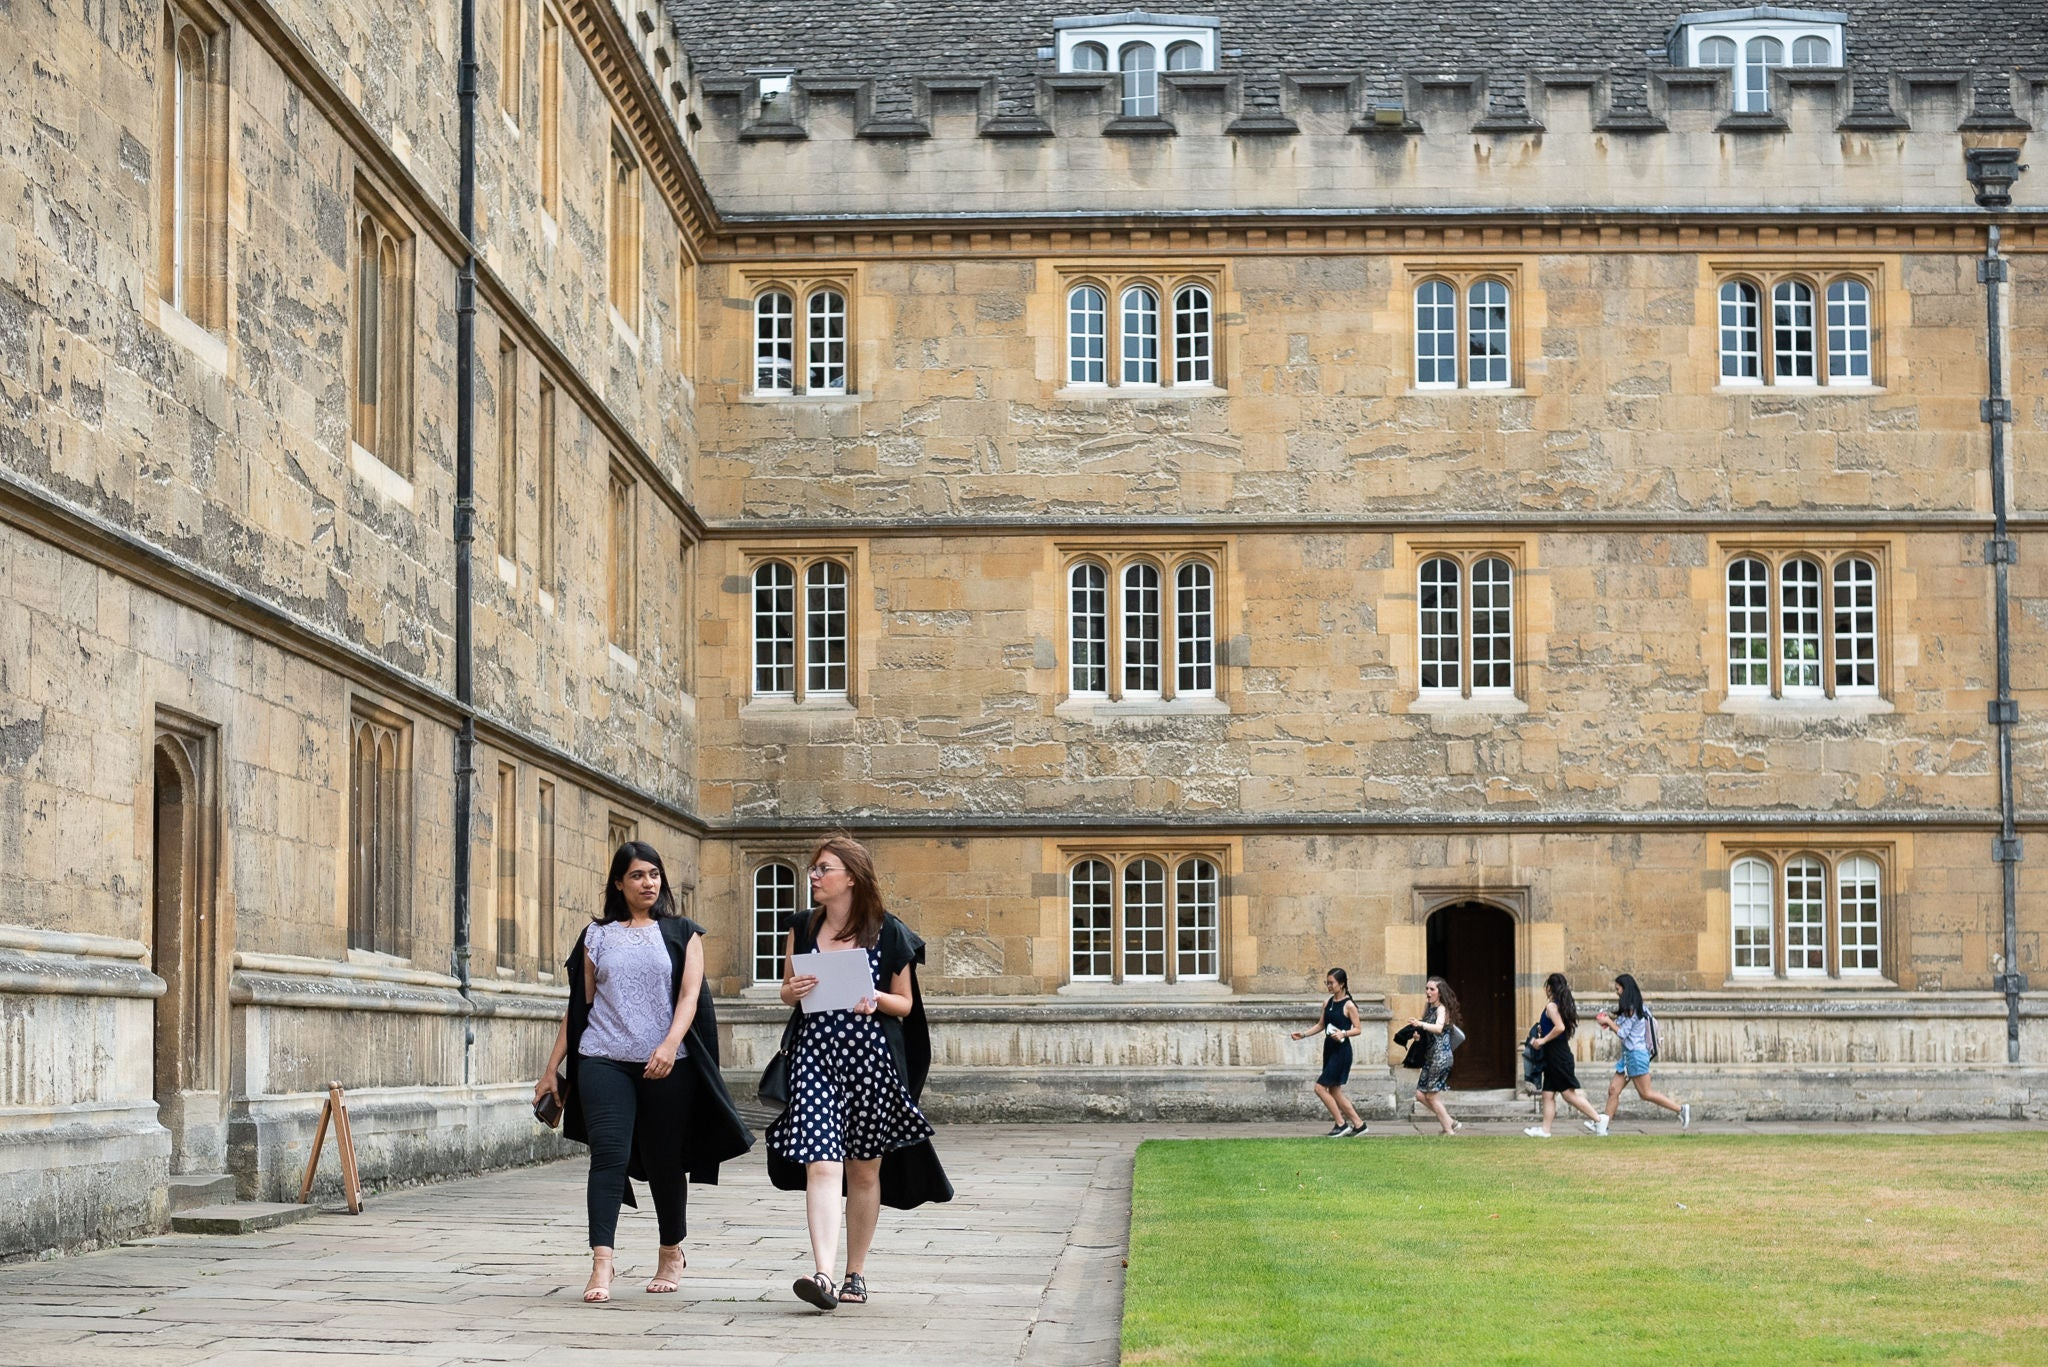 Students walk through a courtyard in Oxford